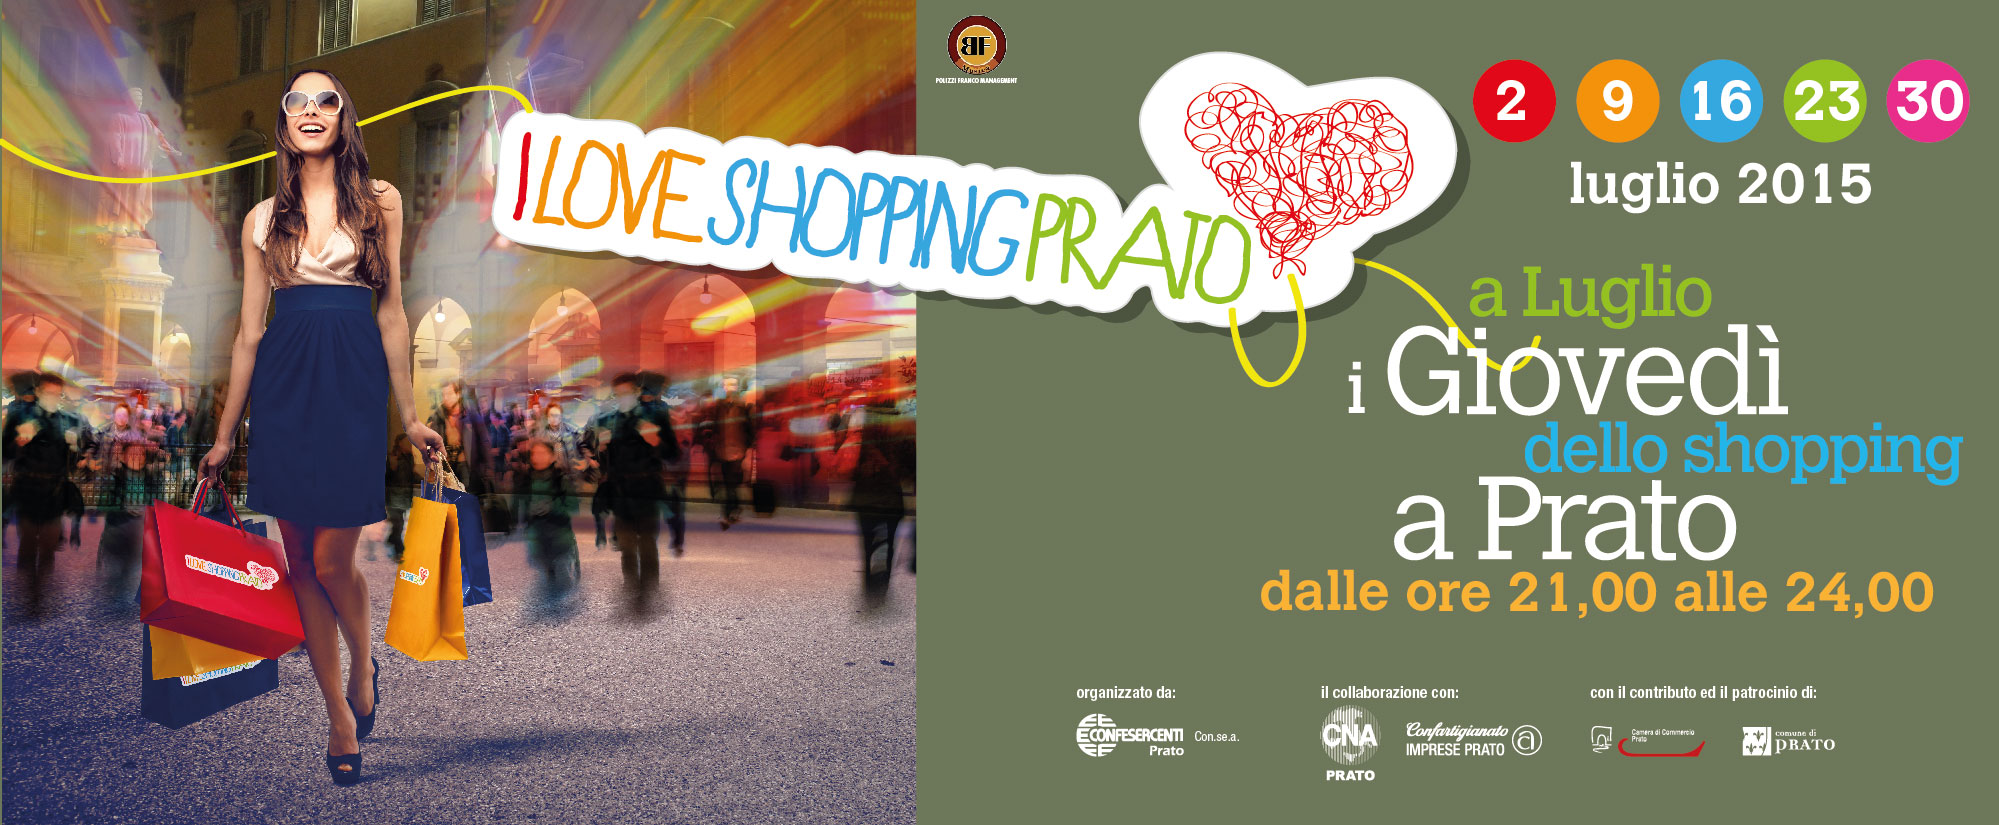 I-Love-Shopping-Prato